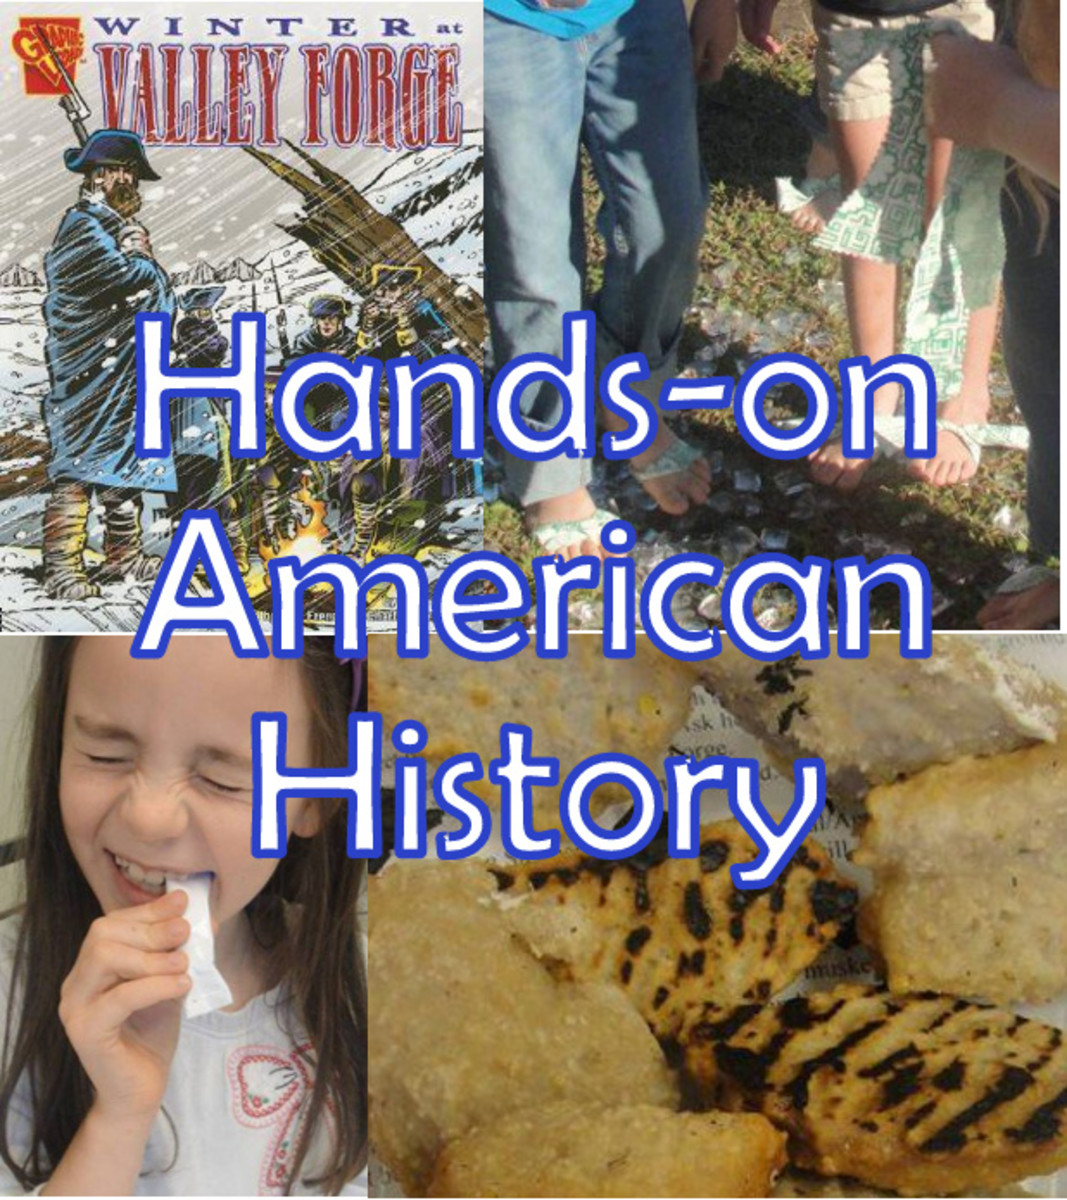 Hands-on American History: Valley Forge & Battle of Yorktown Lesson